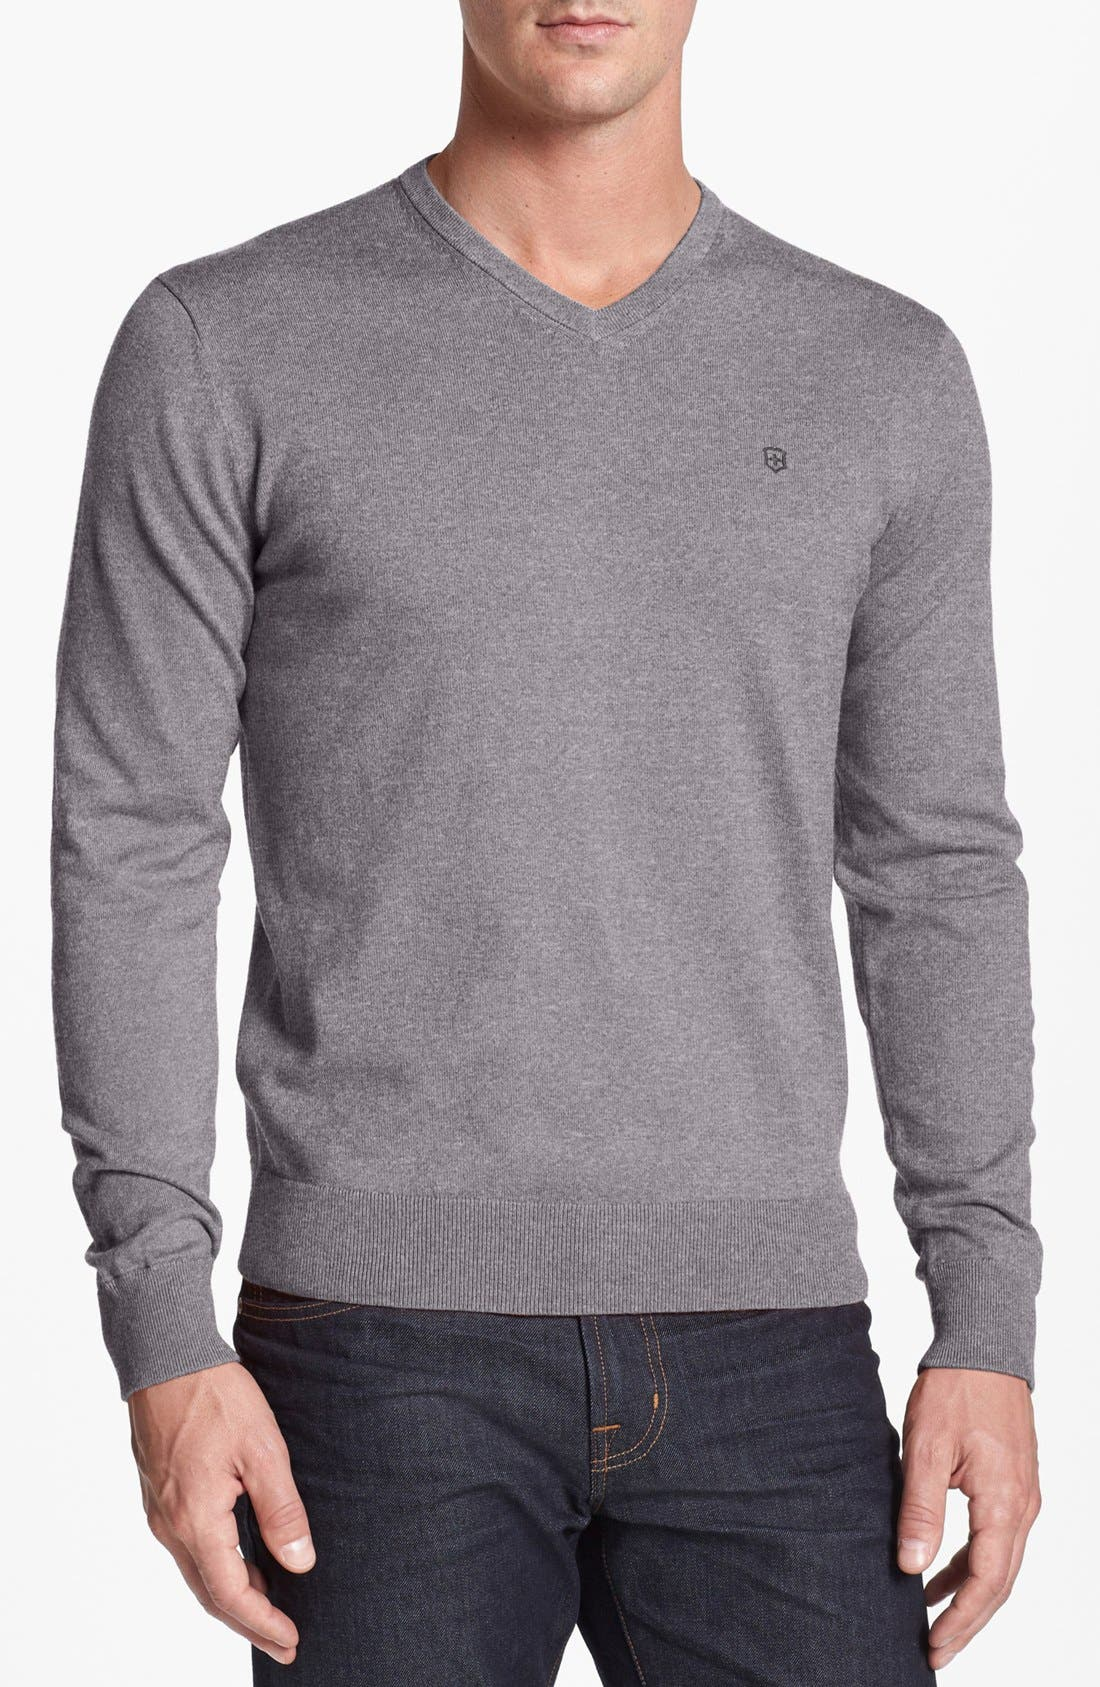 Alternate Image 1 Selected - Victorinox Swiss Army® 'Signature' Tailored Fit V-Neck Sweater (Online Only)